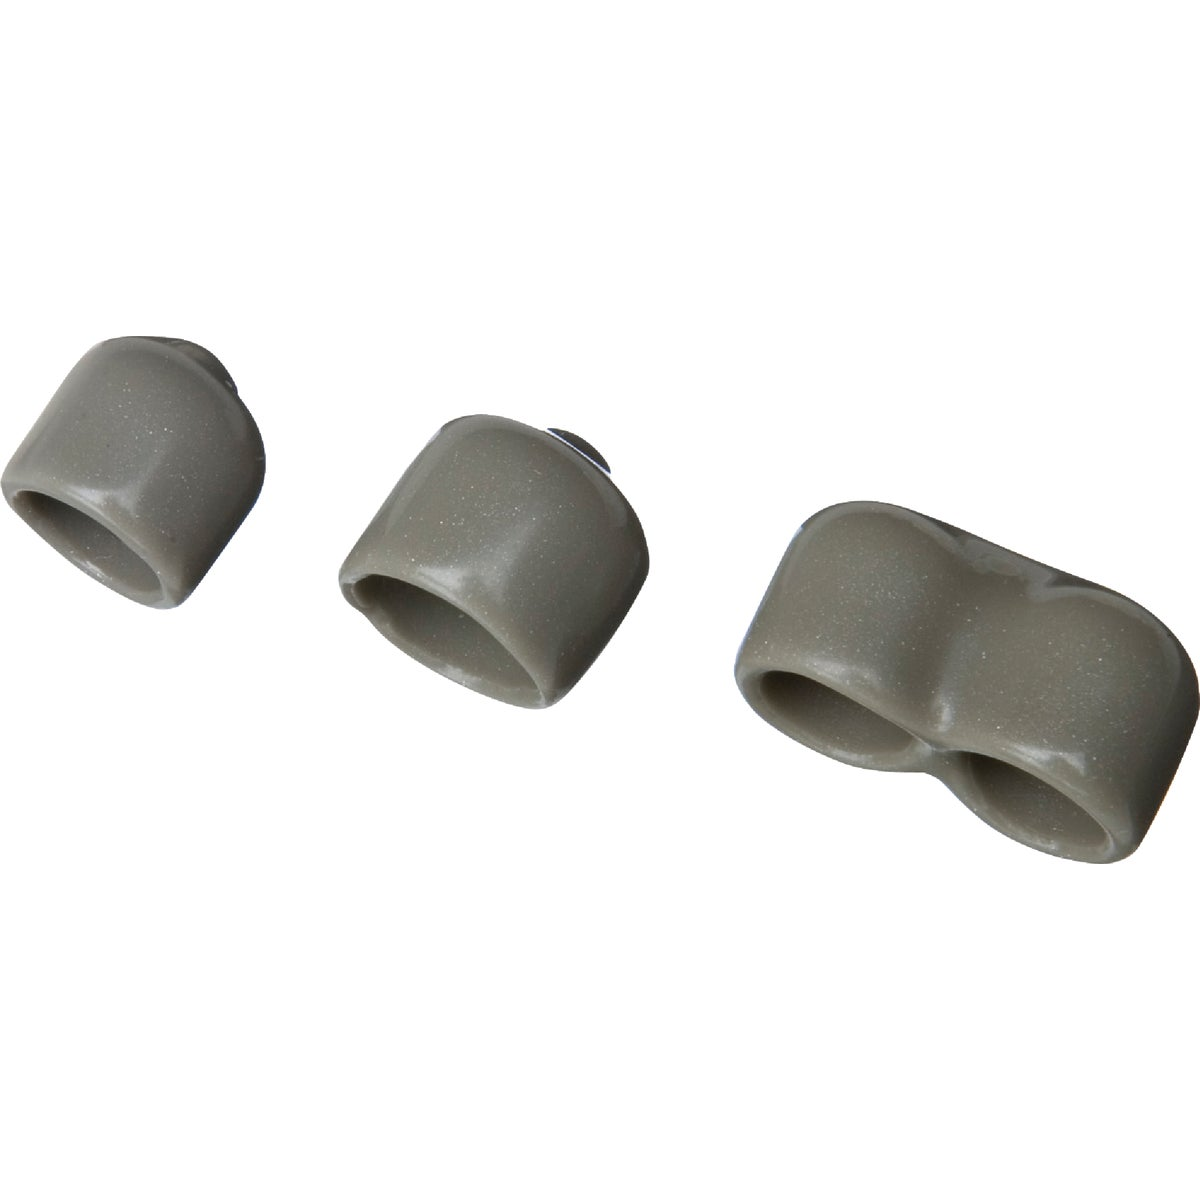 NICKEL PROFILE END CAPS